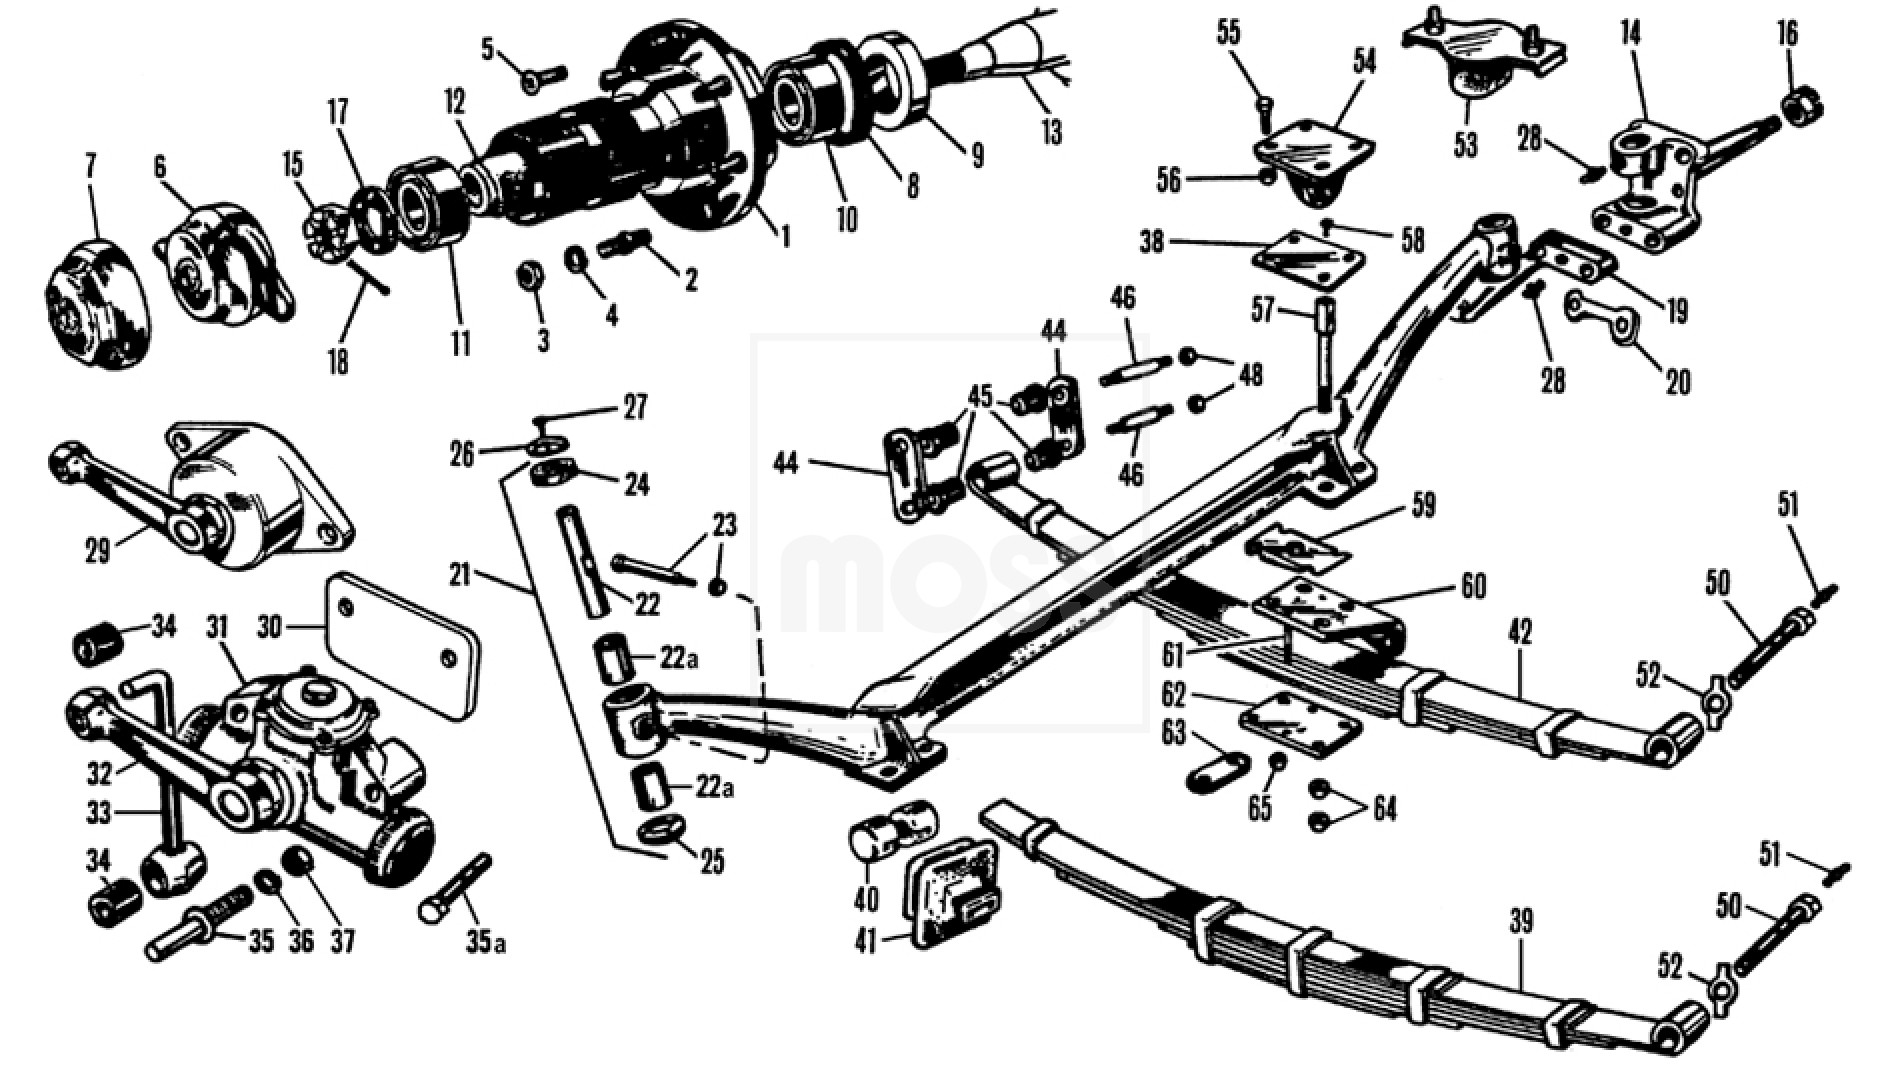 Fiat 1500 Wiring Diagram Also 500 Ford Fairlane Wiring